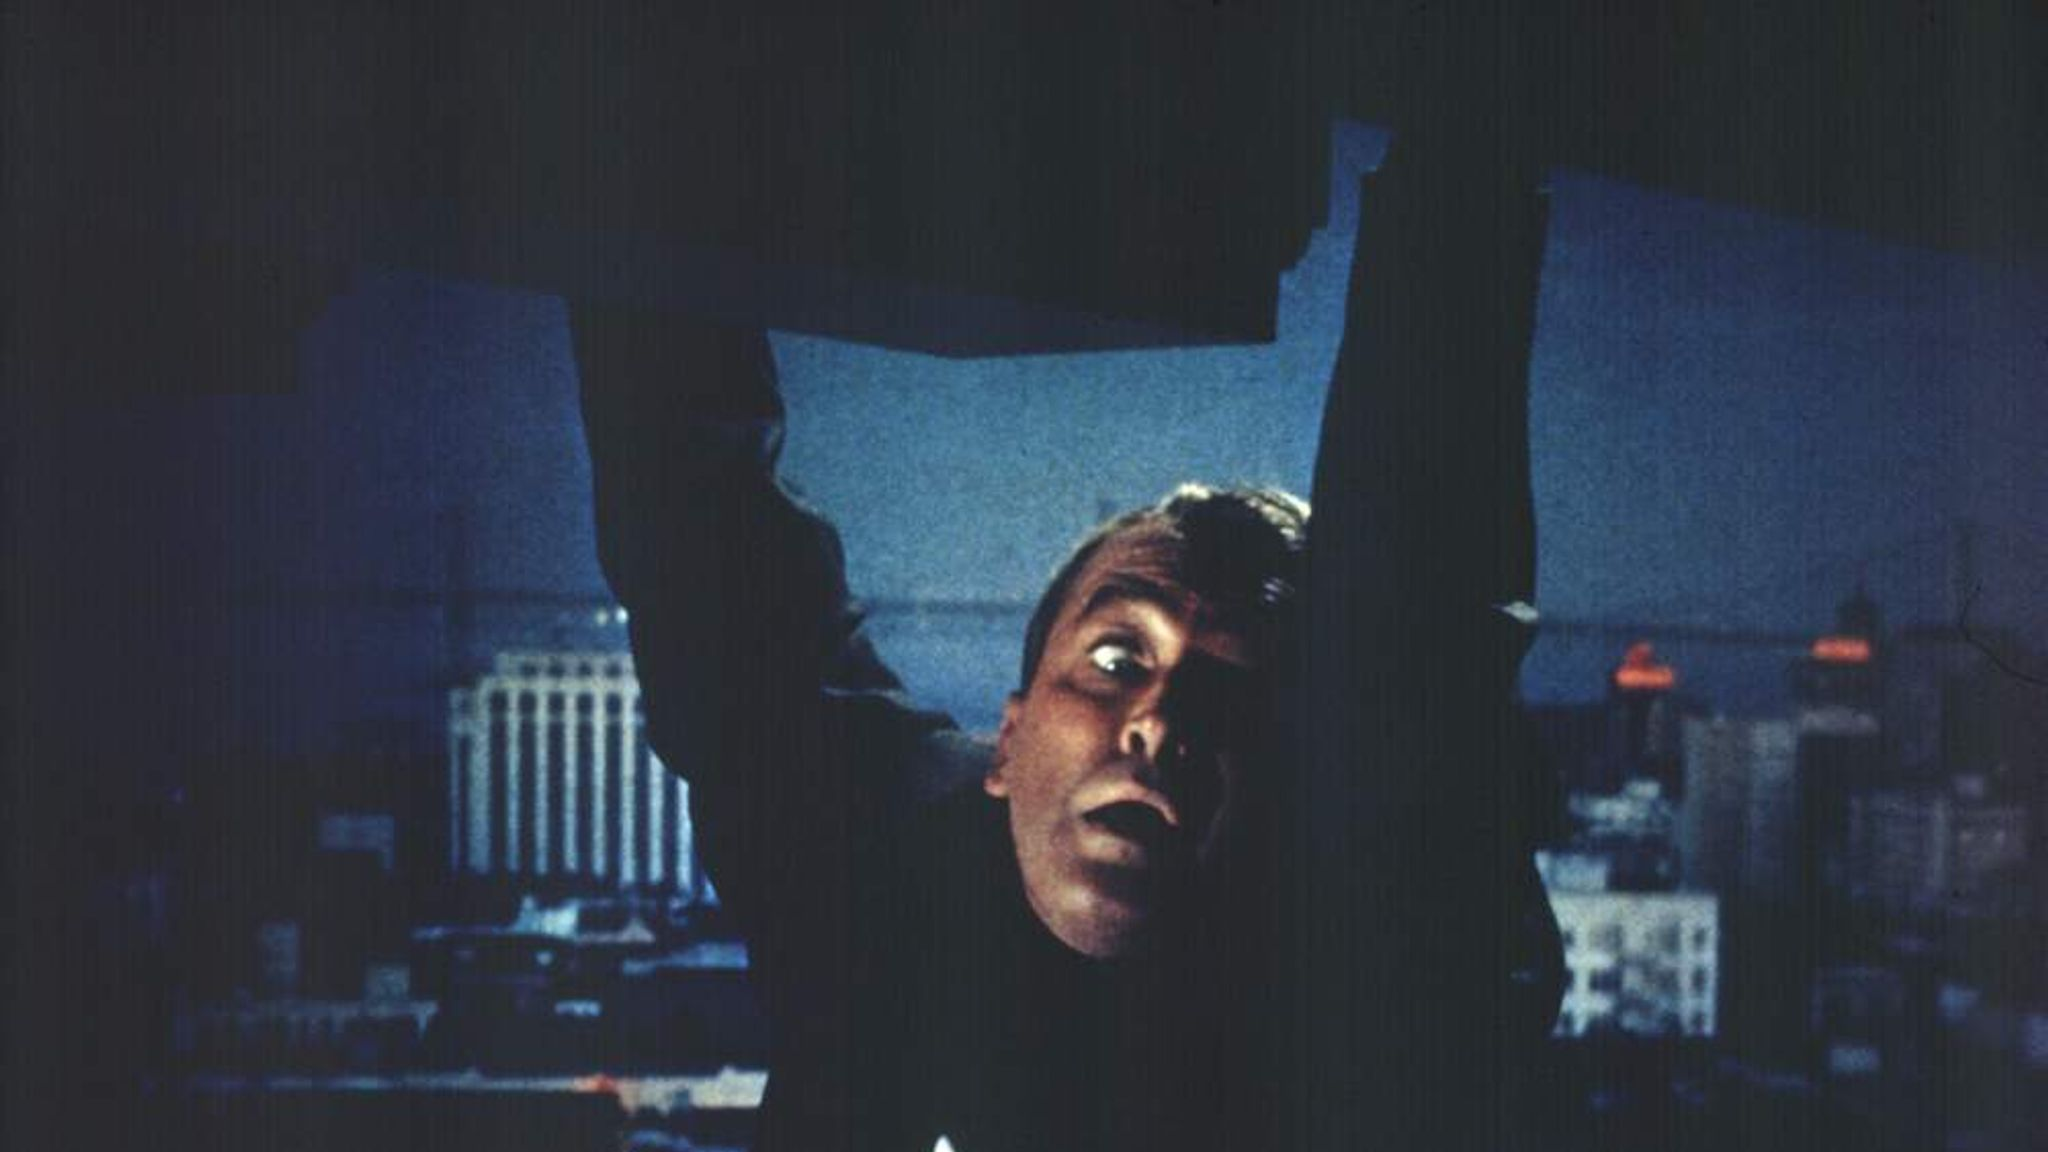 Hitchcock Film Vertigo Voted Best Of All Time Ents Arts